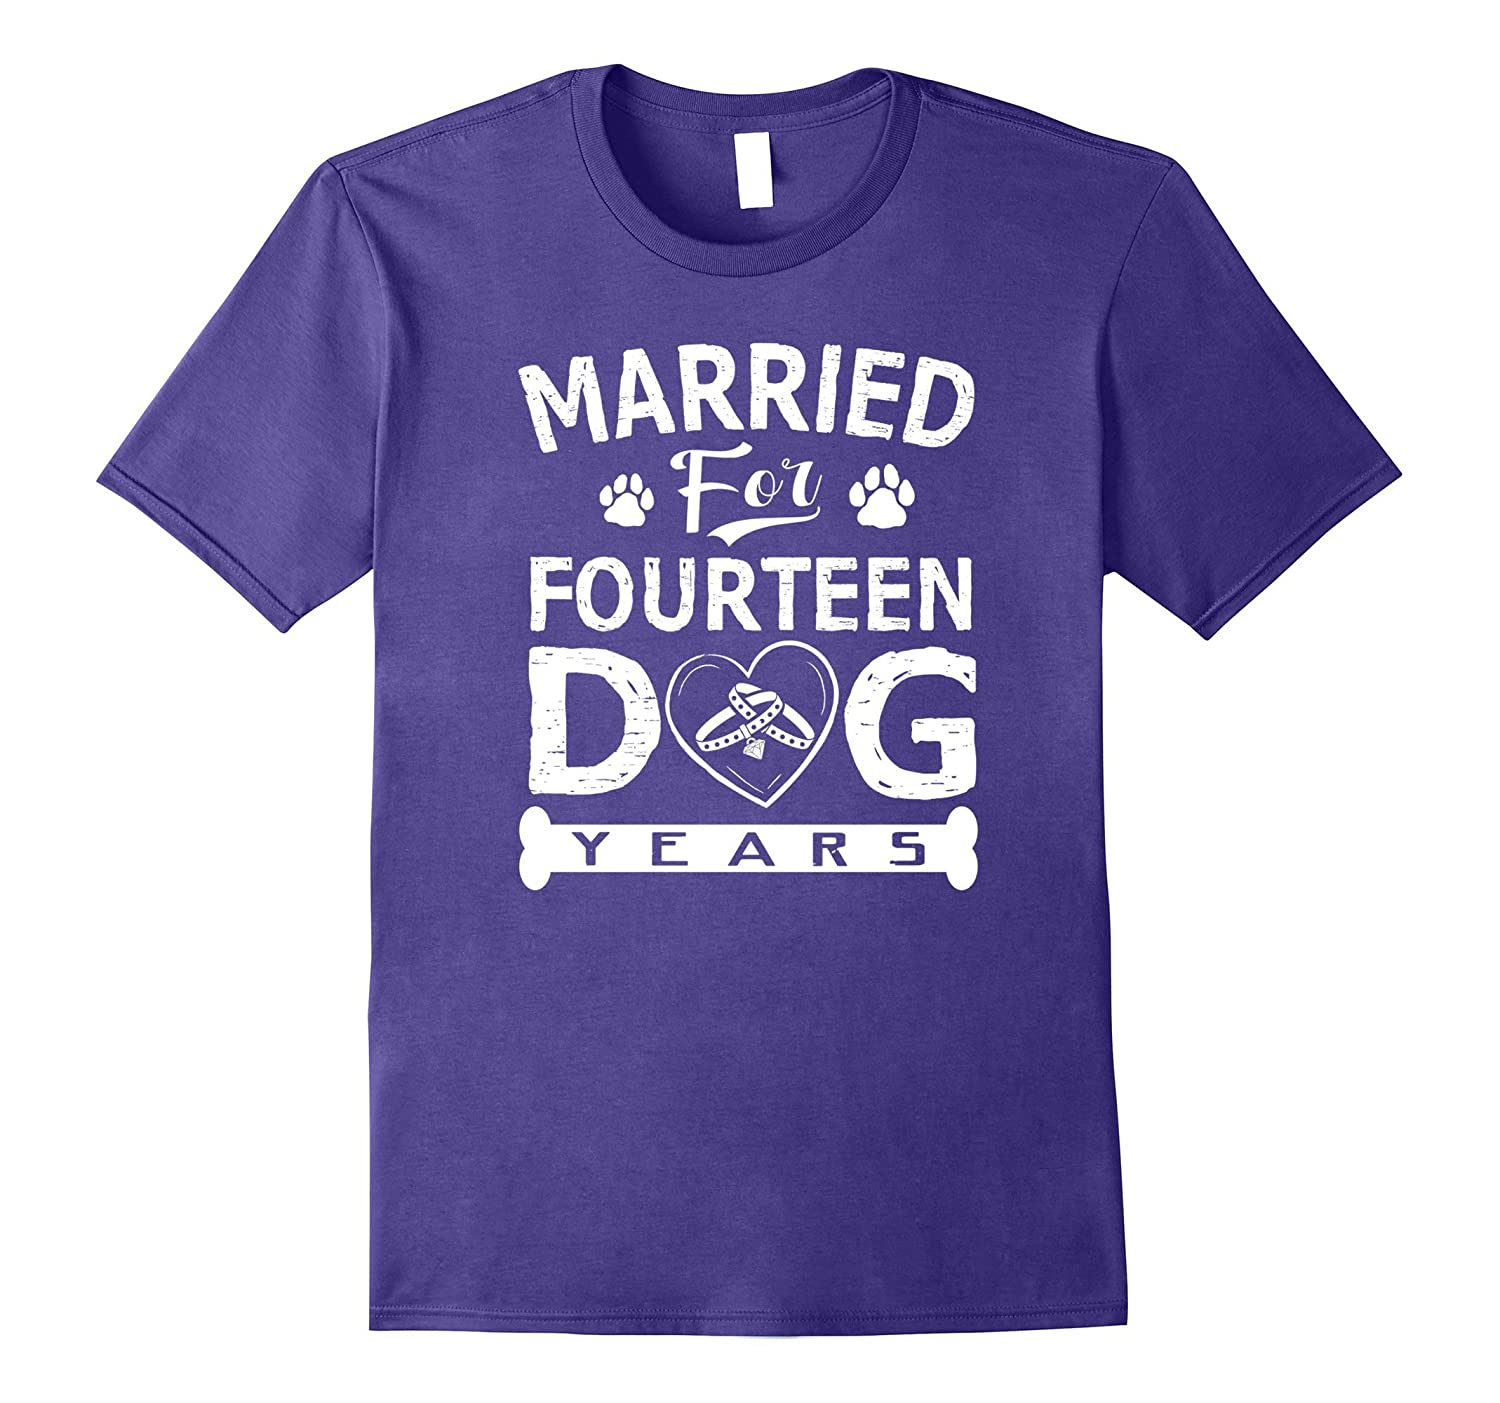 2nd Wedding Anniversary T-Shirt Married For Dog Years Gift-ANZ